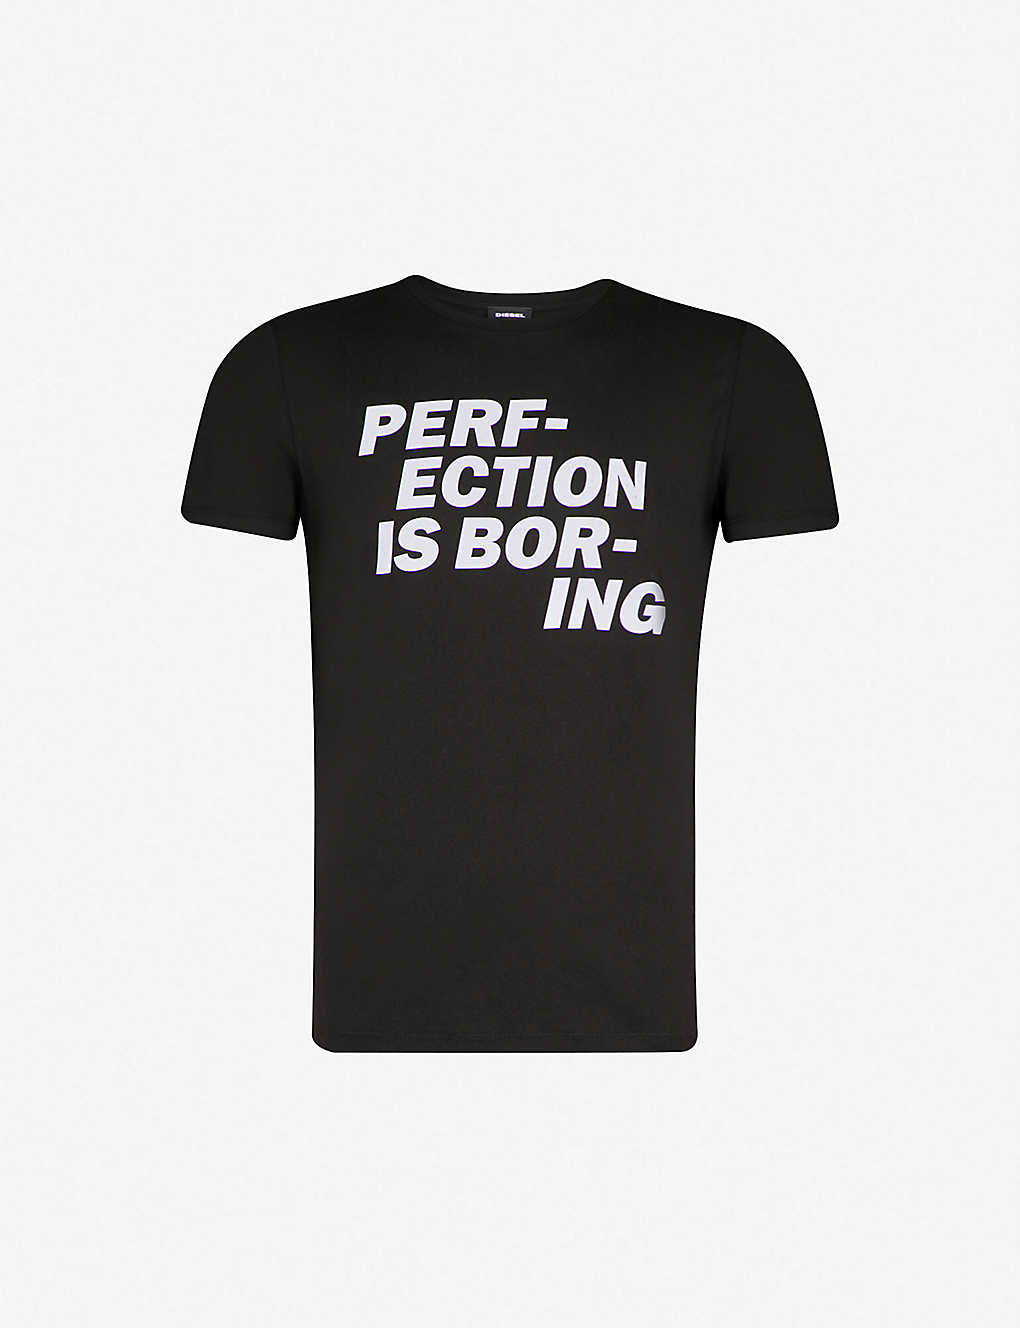 DIESEL - ADV-PERF-ECTION cotton-jersey T-shirt | Selfridges com